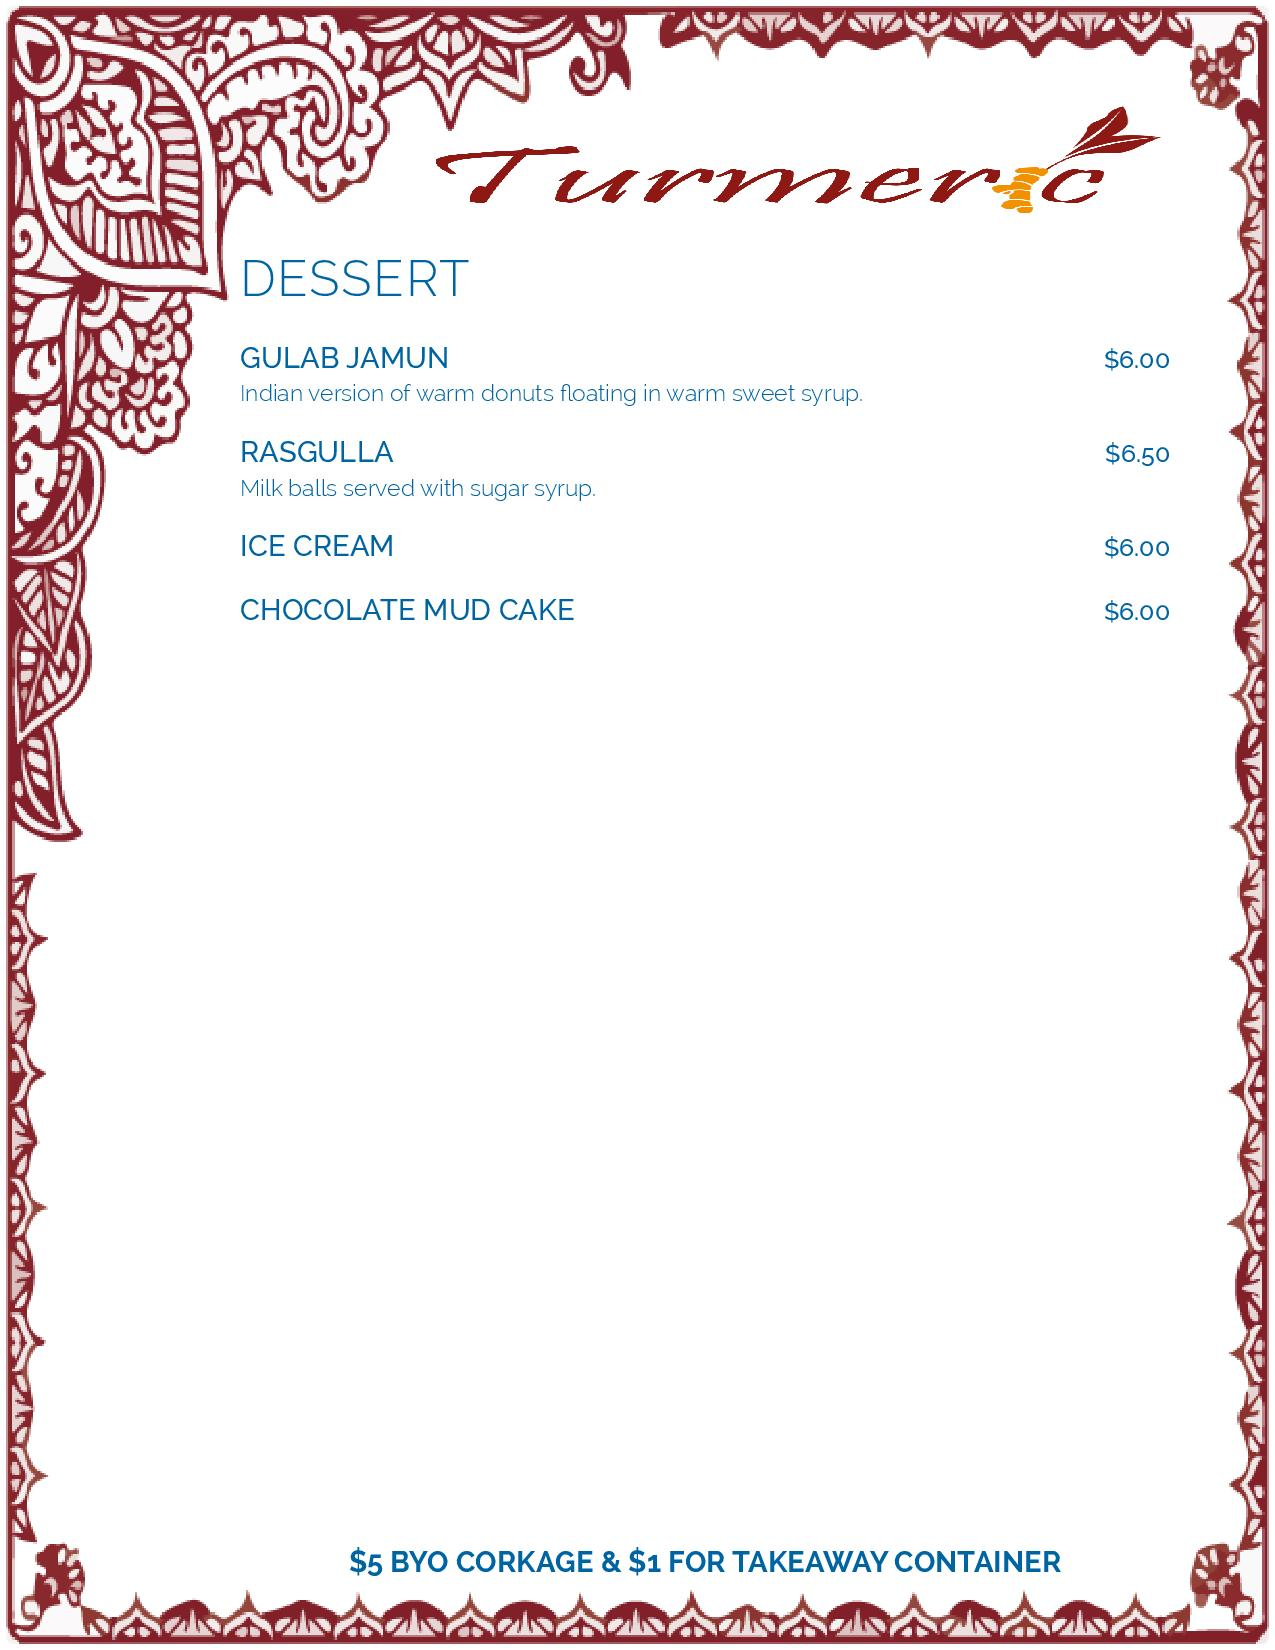 http://turmericrestaurant.co.nz/wp-content/uploads/2016/07/turmeric-menu.15.pdf